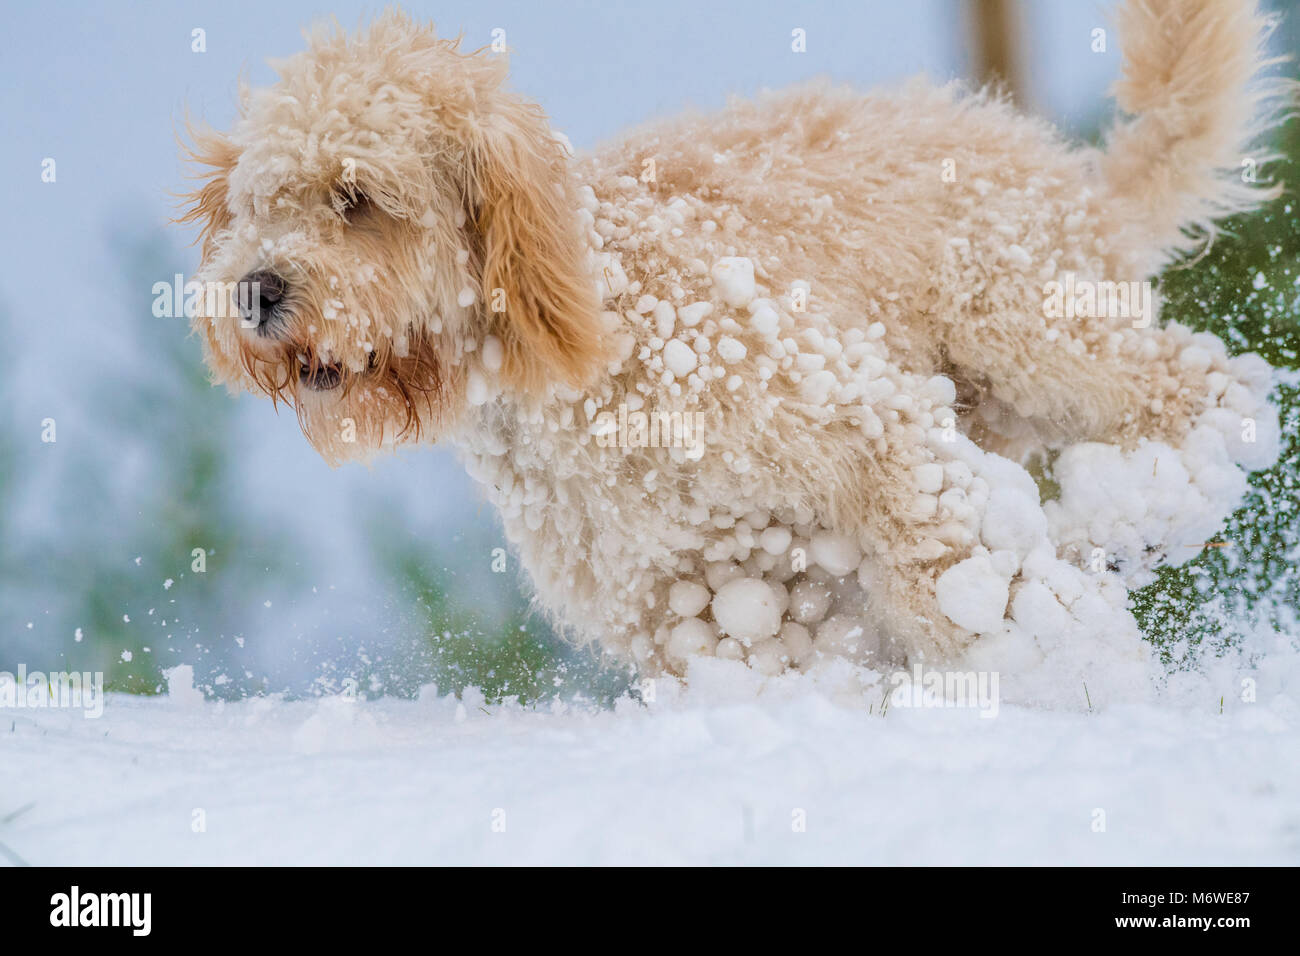 Cockapoo puppy playing in a fresh layer of snow for its first time. - Stock Image